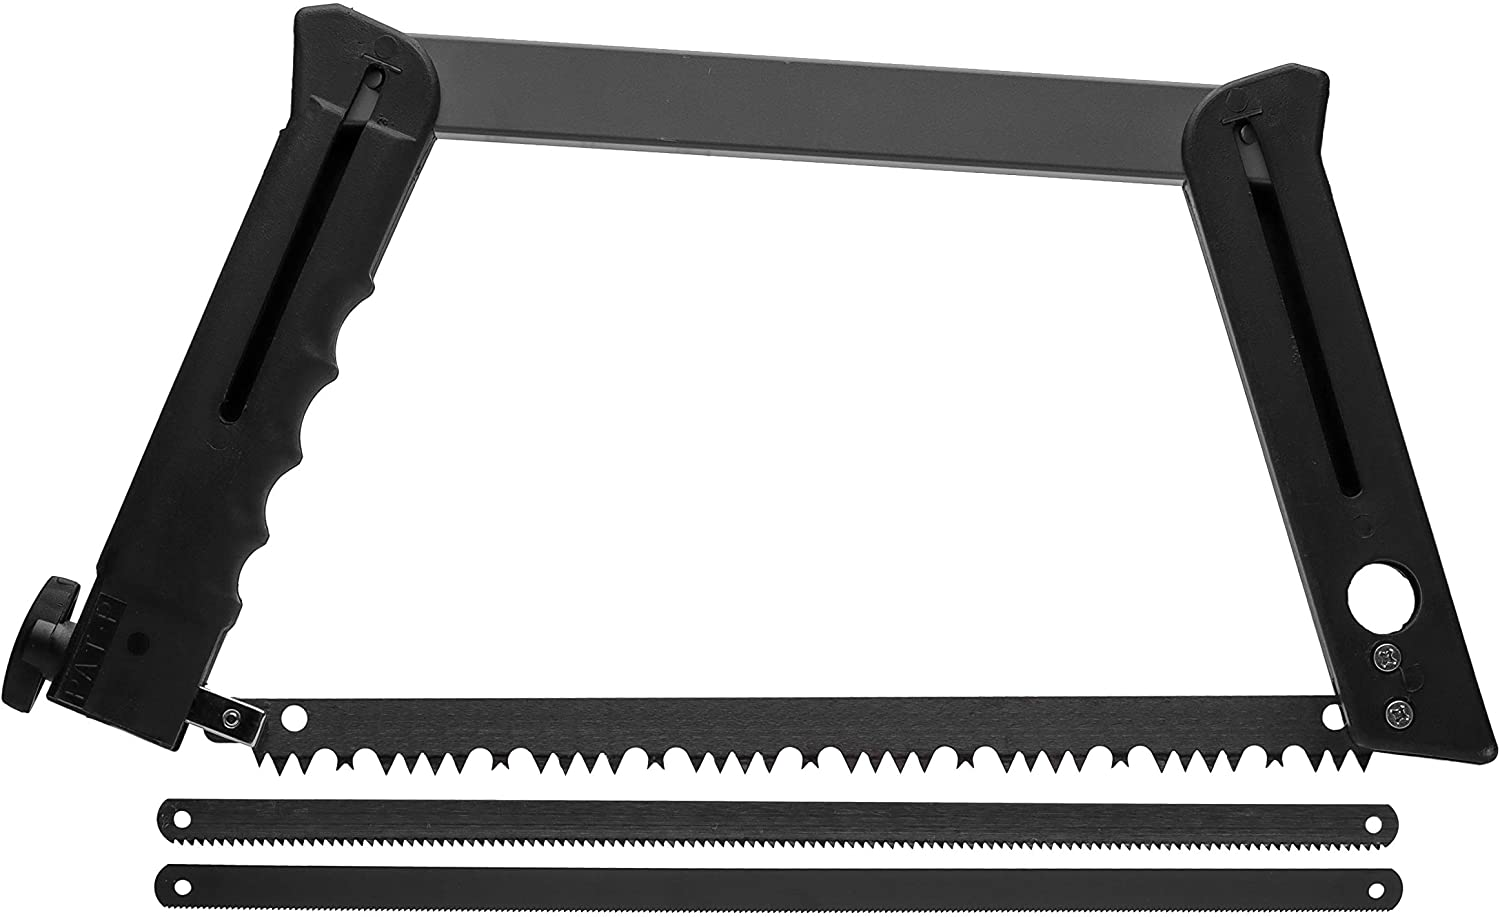 Packsaw™ by Outdoor Edge